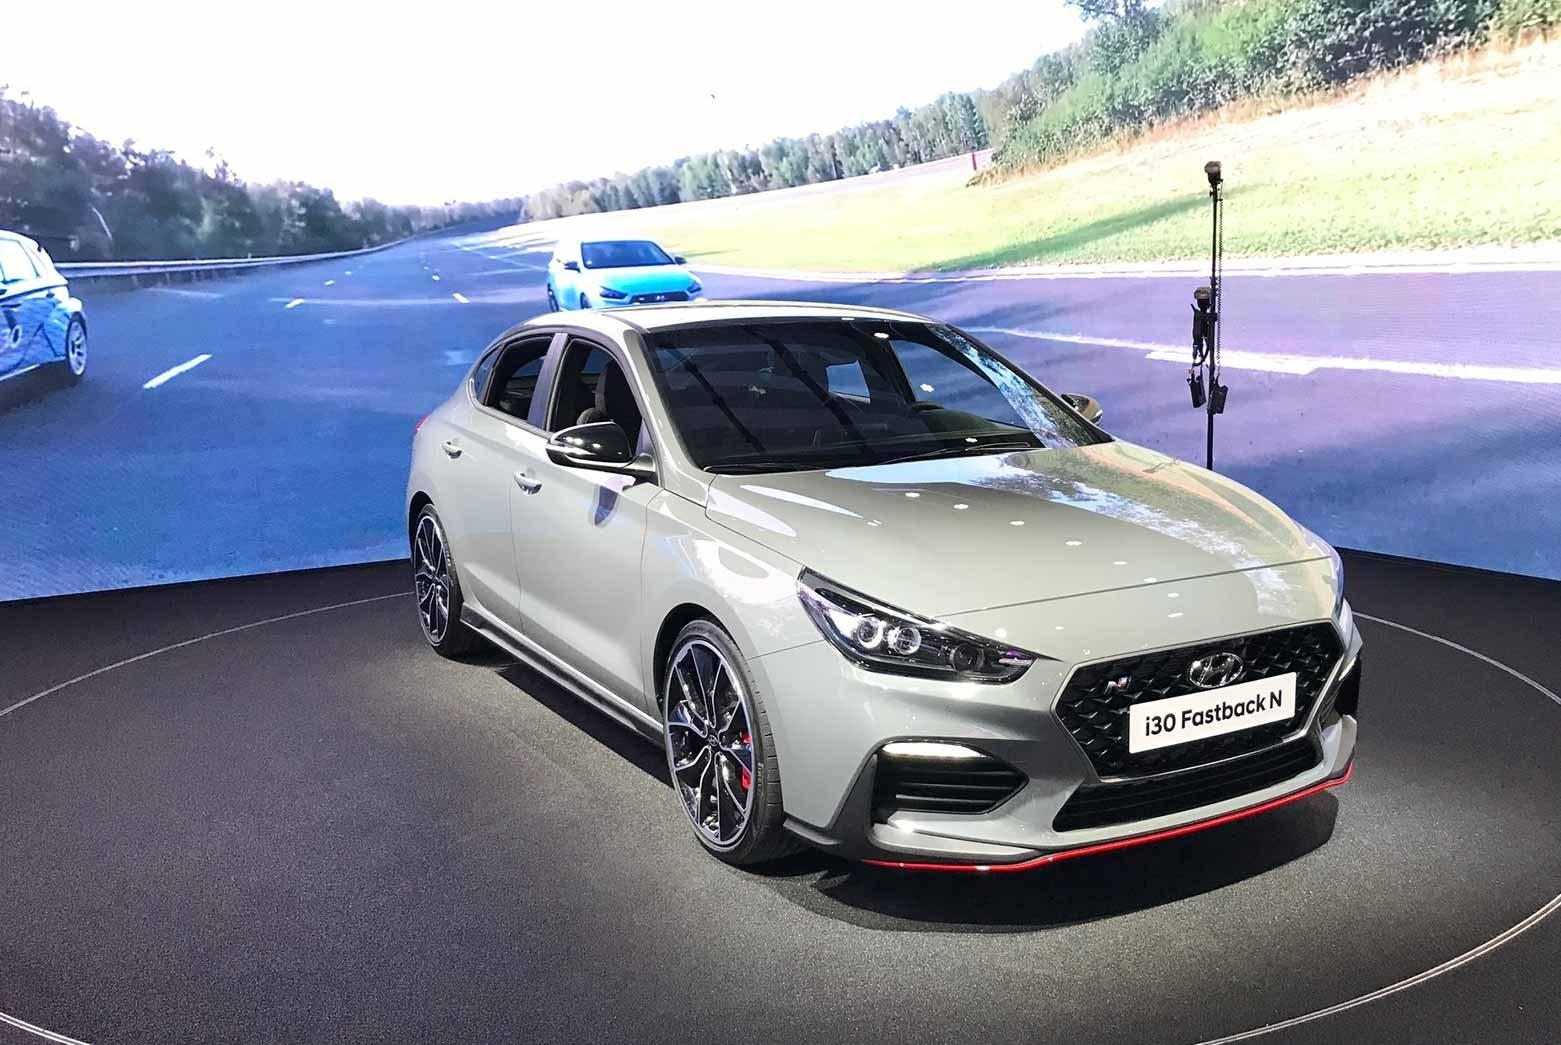 new hyundai i30 fastback n uk price revealed car magazine. Black Bedroom Furniture Sets. Home Design Ideas